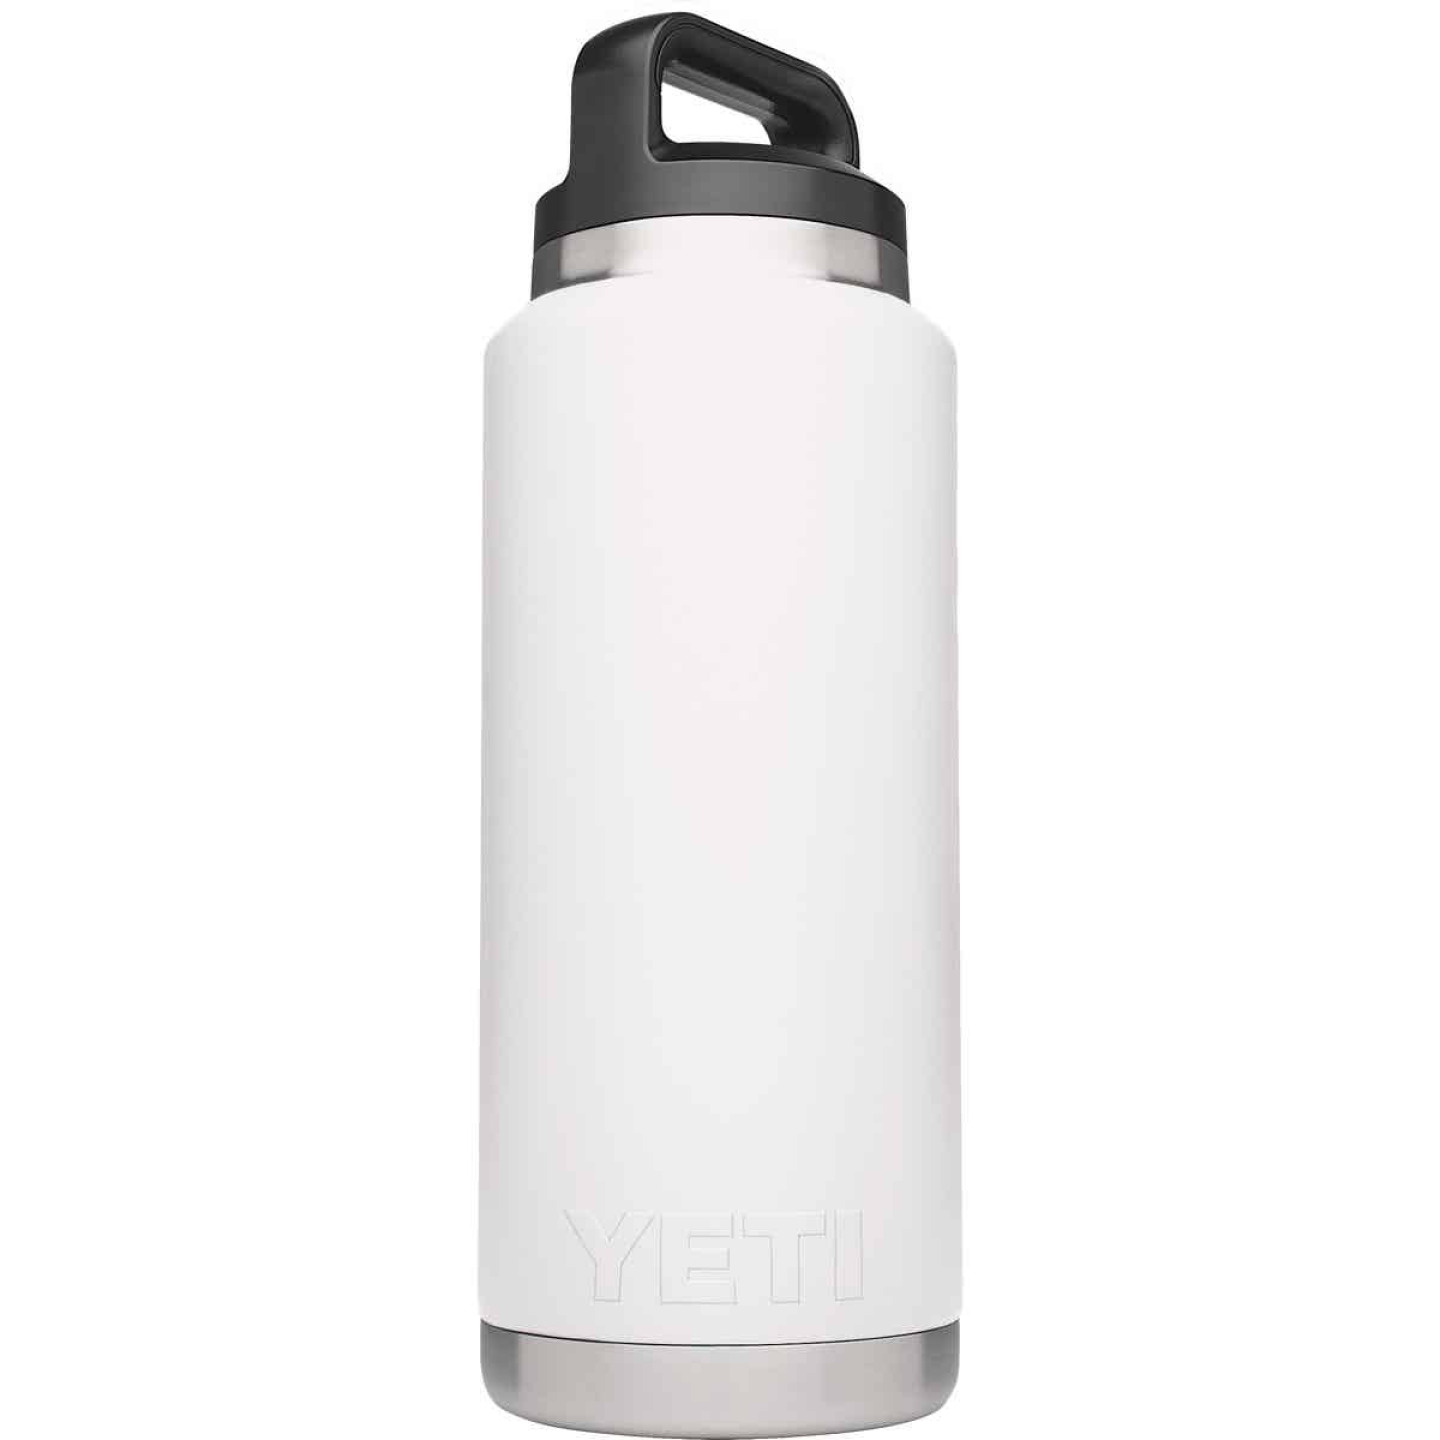 Yeti Rambler 36 Oz. White Stainless Steel Insulated Vacuum Bottle Image 1